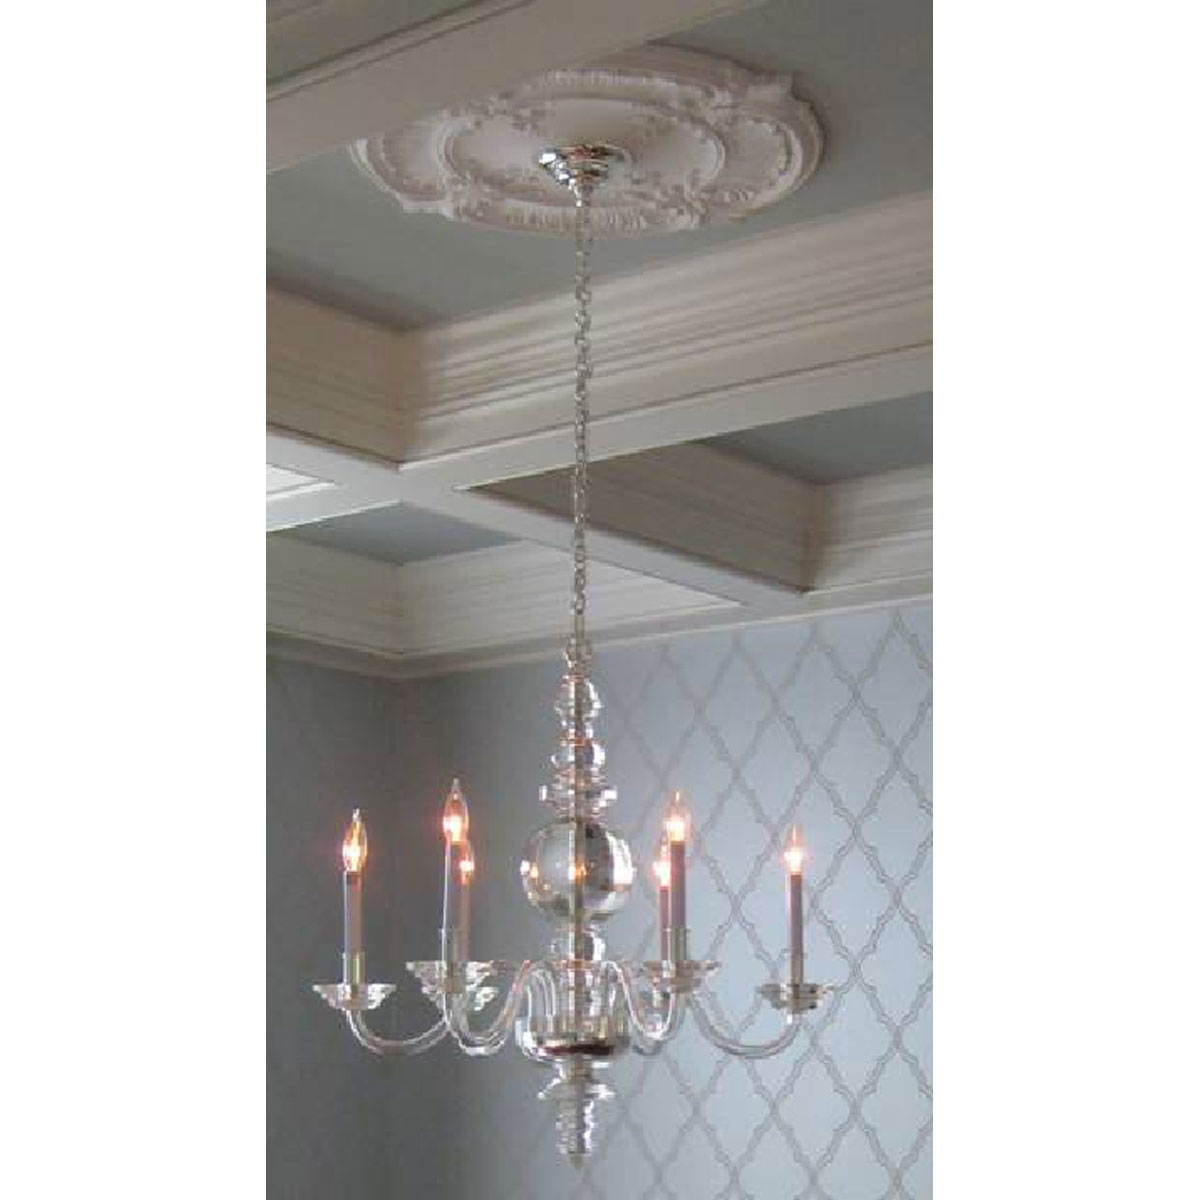 ekena blankets medallion ceilings images medallions archdepot pinterest millwork ceiling on best tristan